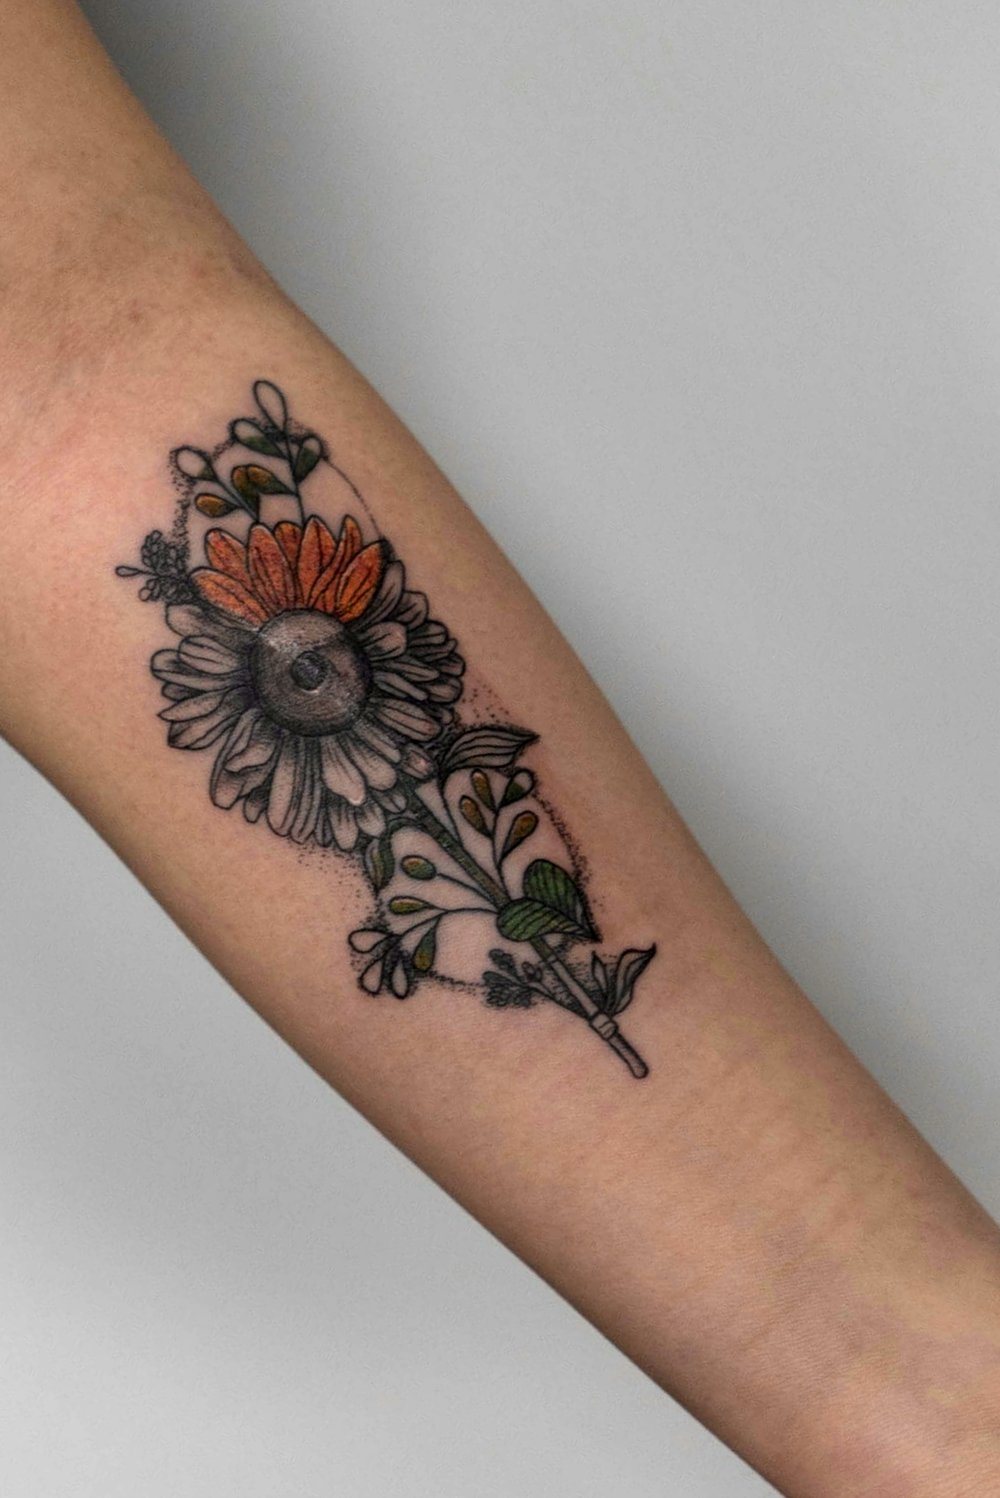 Custom Sunflower Tattoo with color accents by Danielle at Certified Tattoo Studios Denver Co.jpg